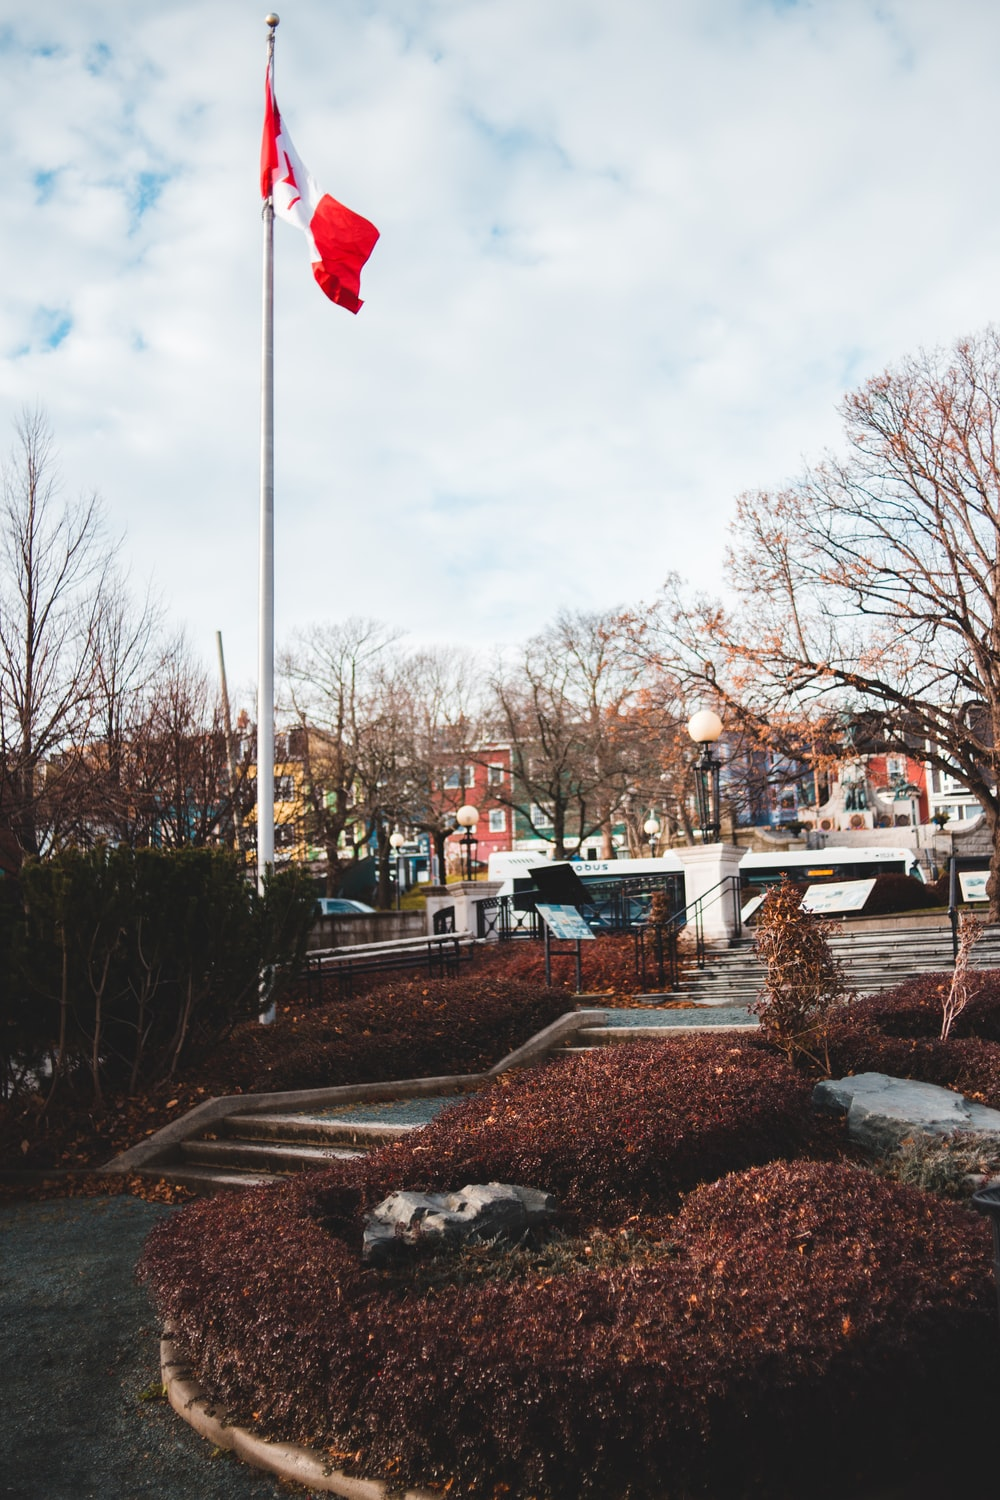 white and red flag on pole near bare trees during daytime